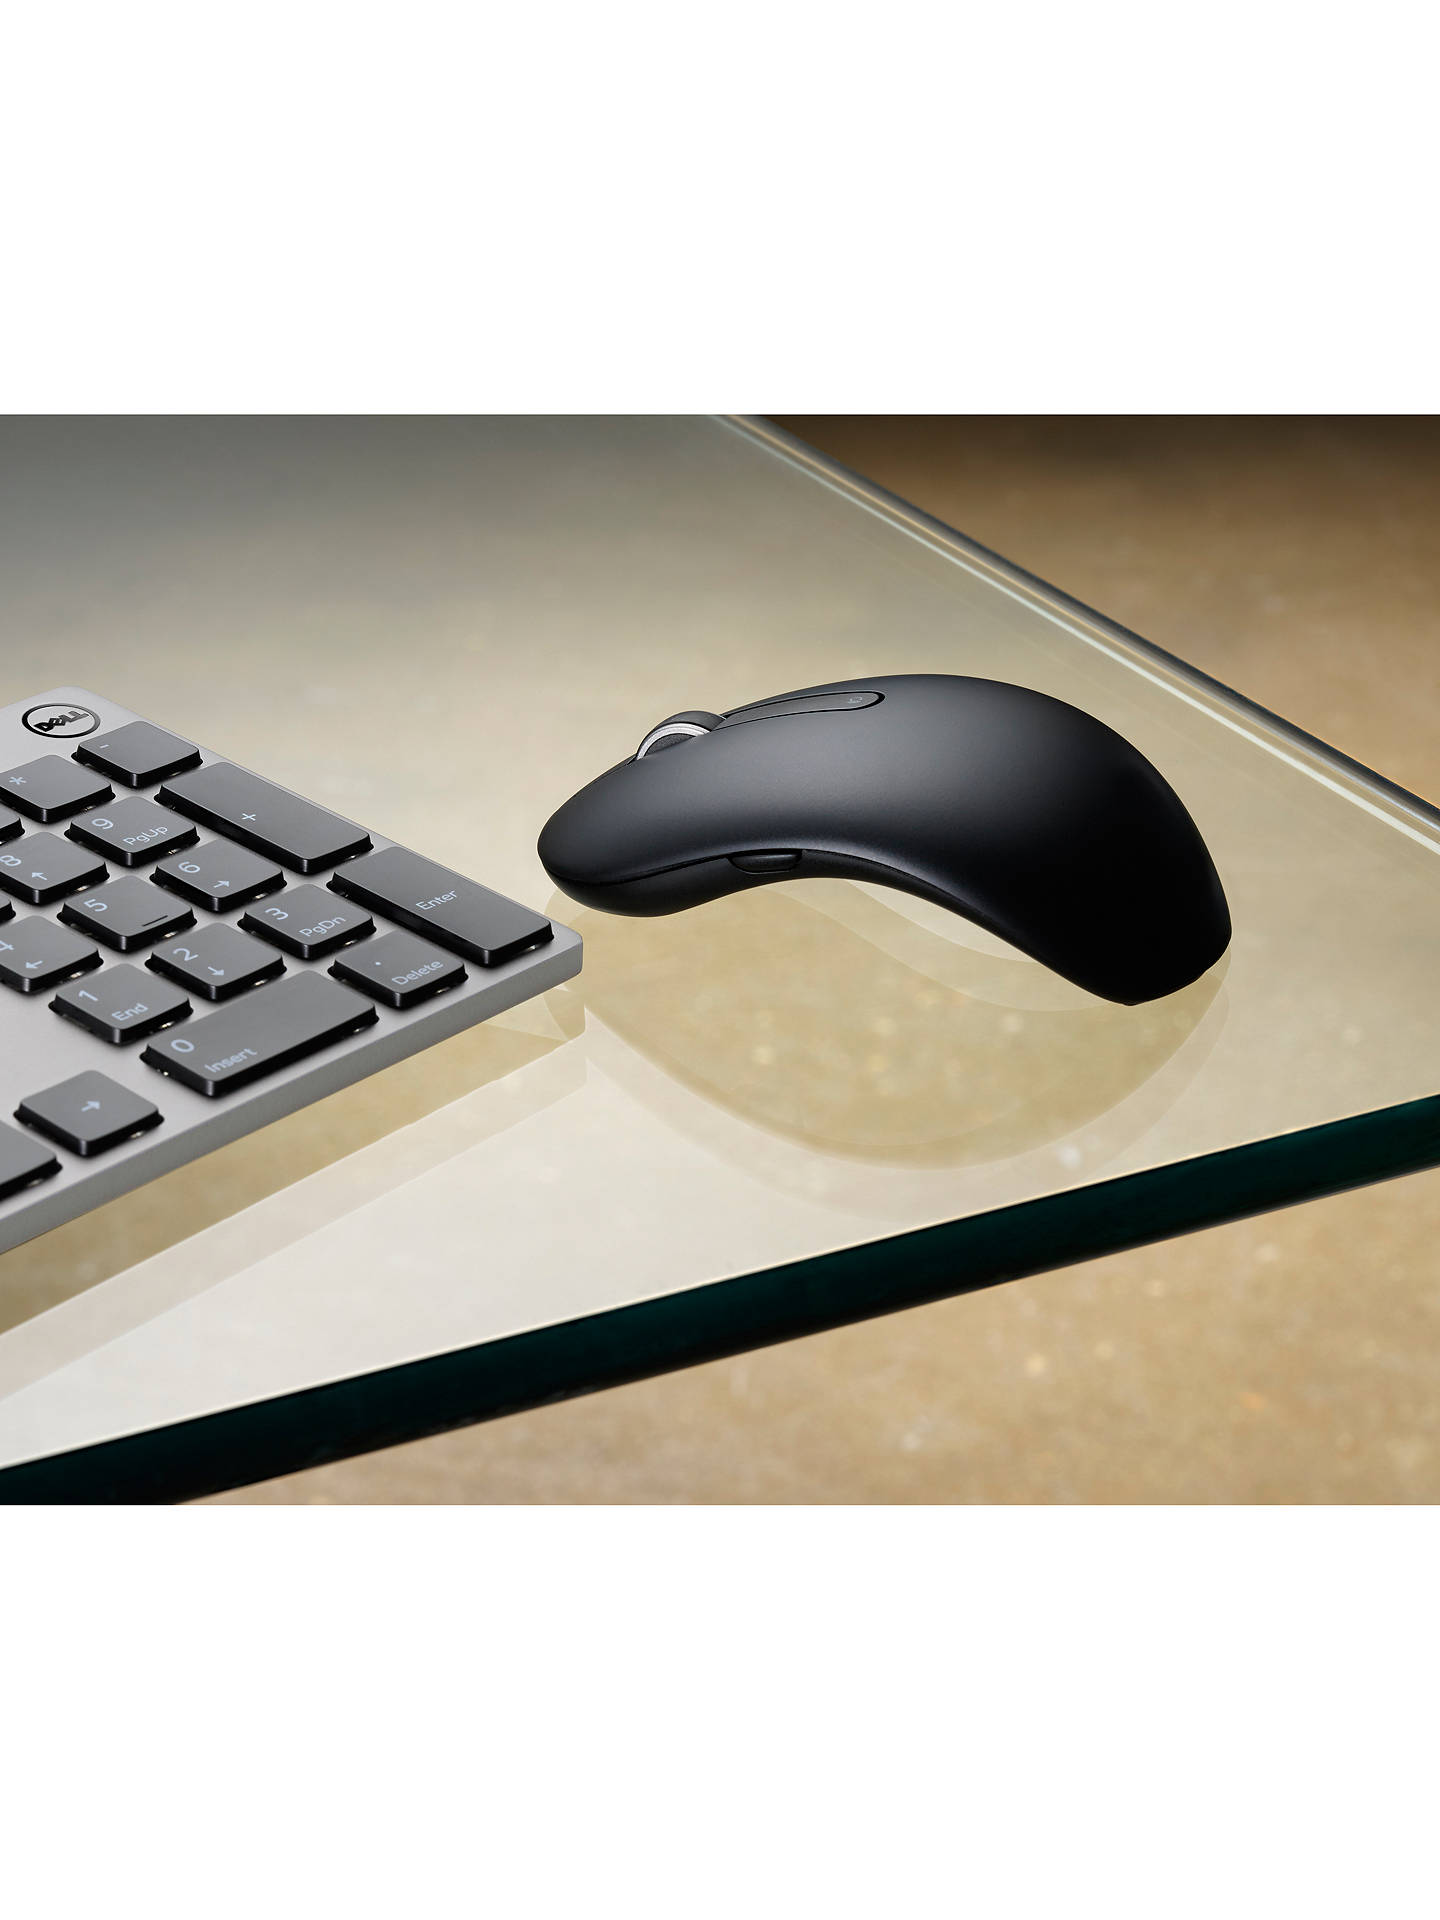 Buy Dell KM717 Premier Wireless Keyboard and Mouse Online at johnlewis.com